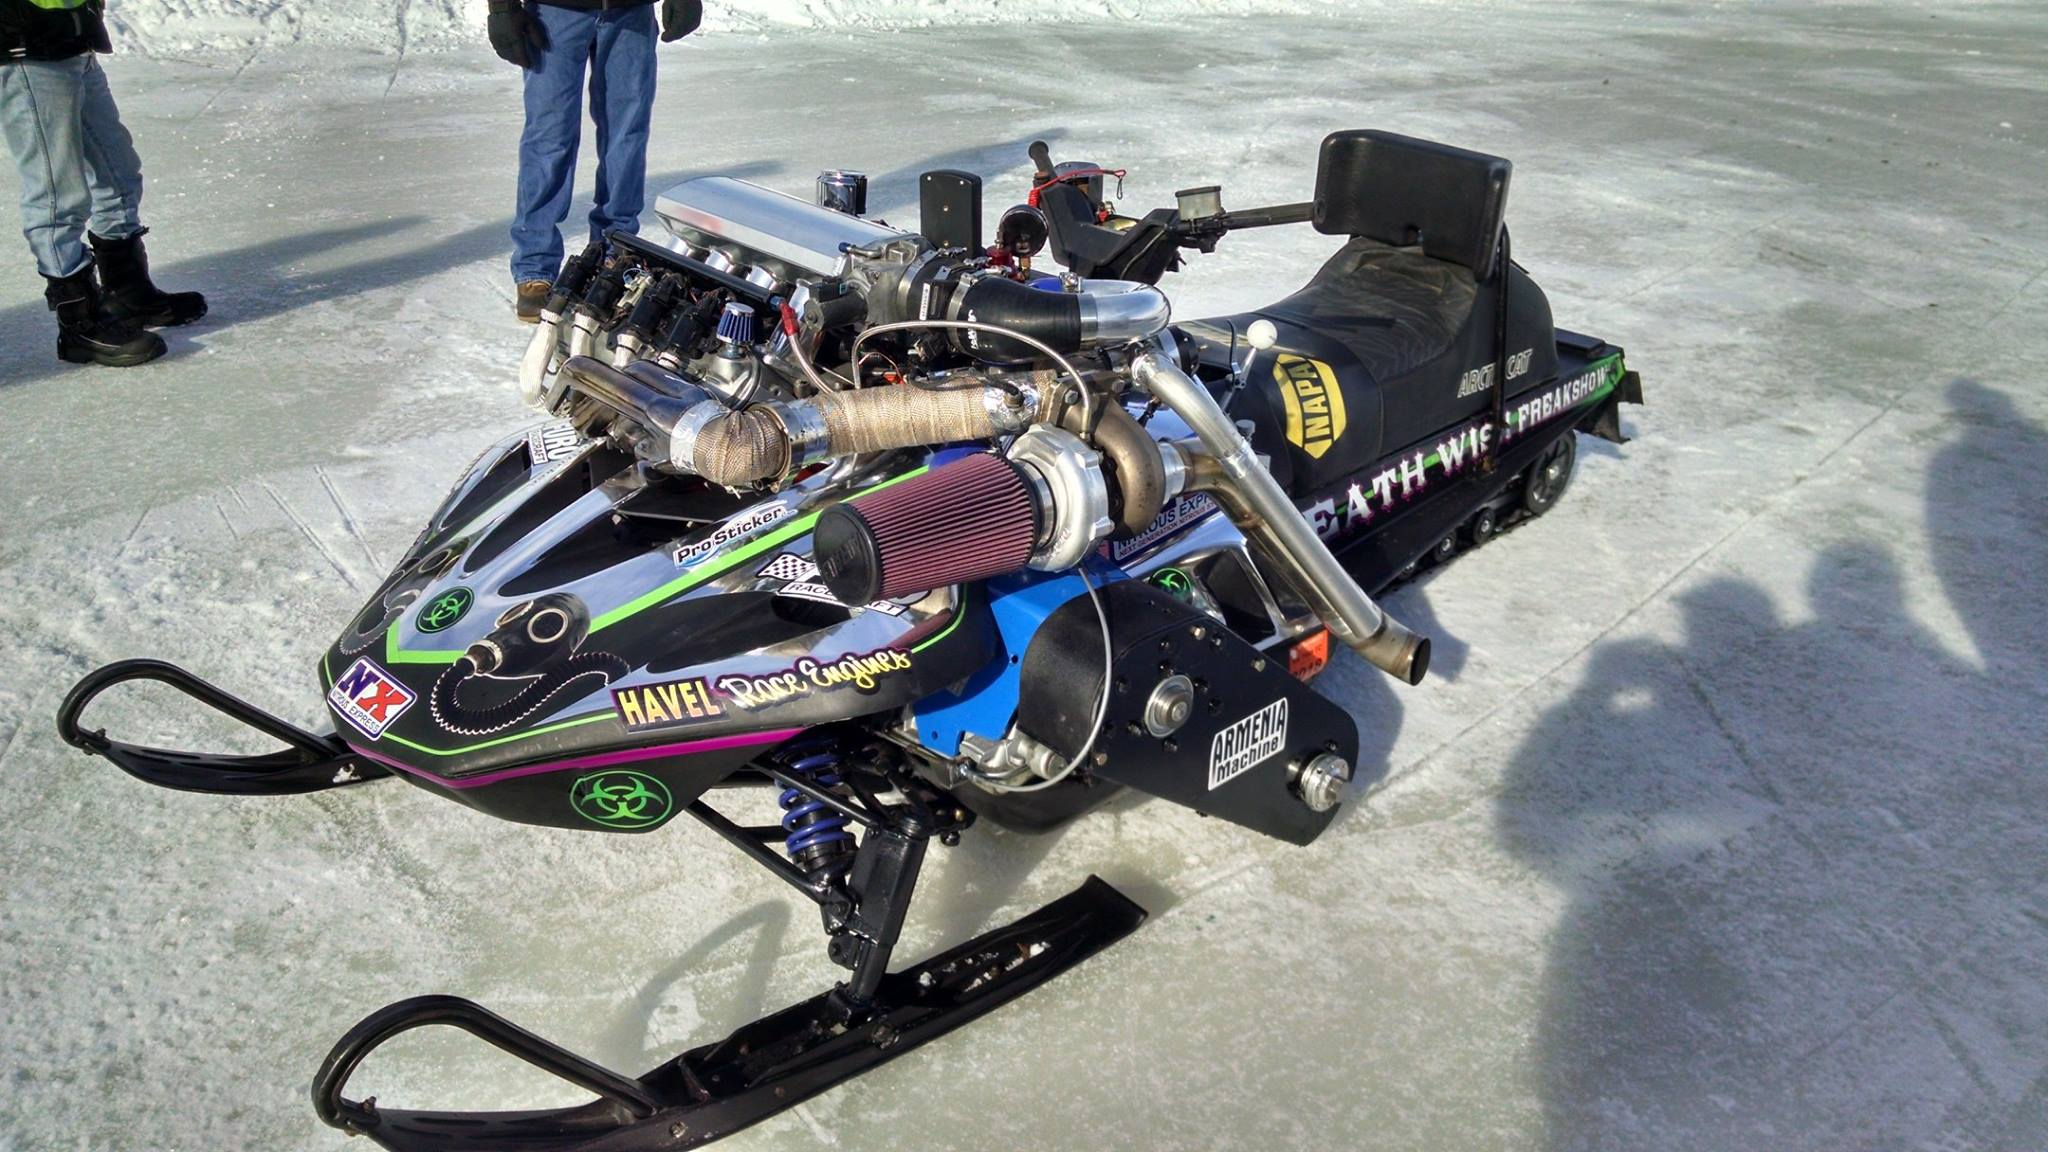 yamaha sxr 700 wiring harness snowmobile with a turbo lsx v8     engine swap depot  snowmobile with a turbo lsx v8     engine swap depot